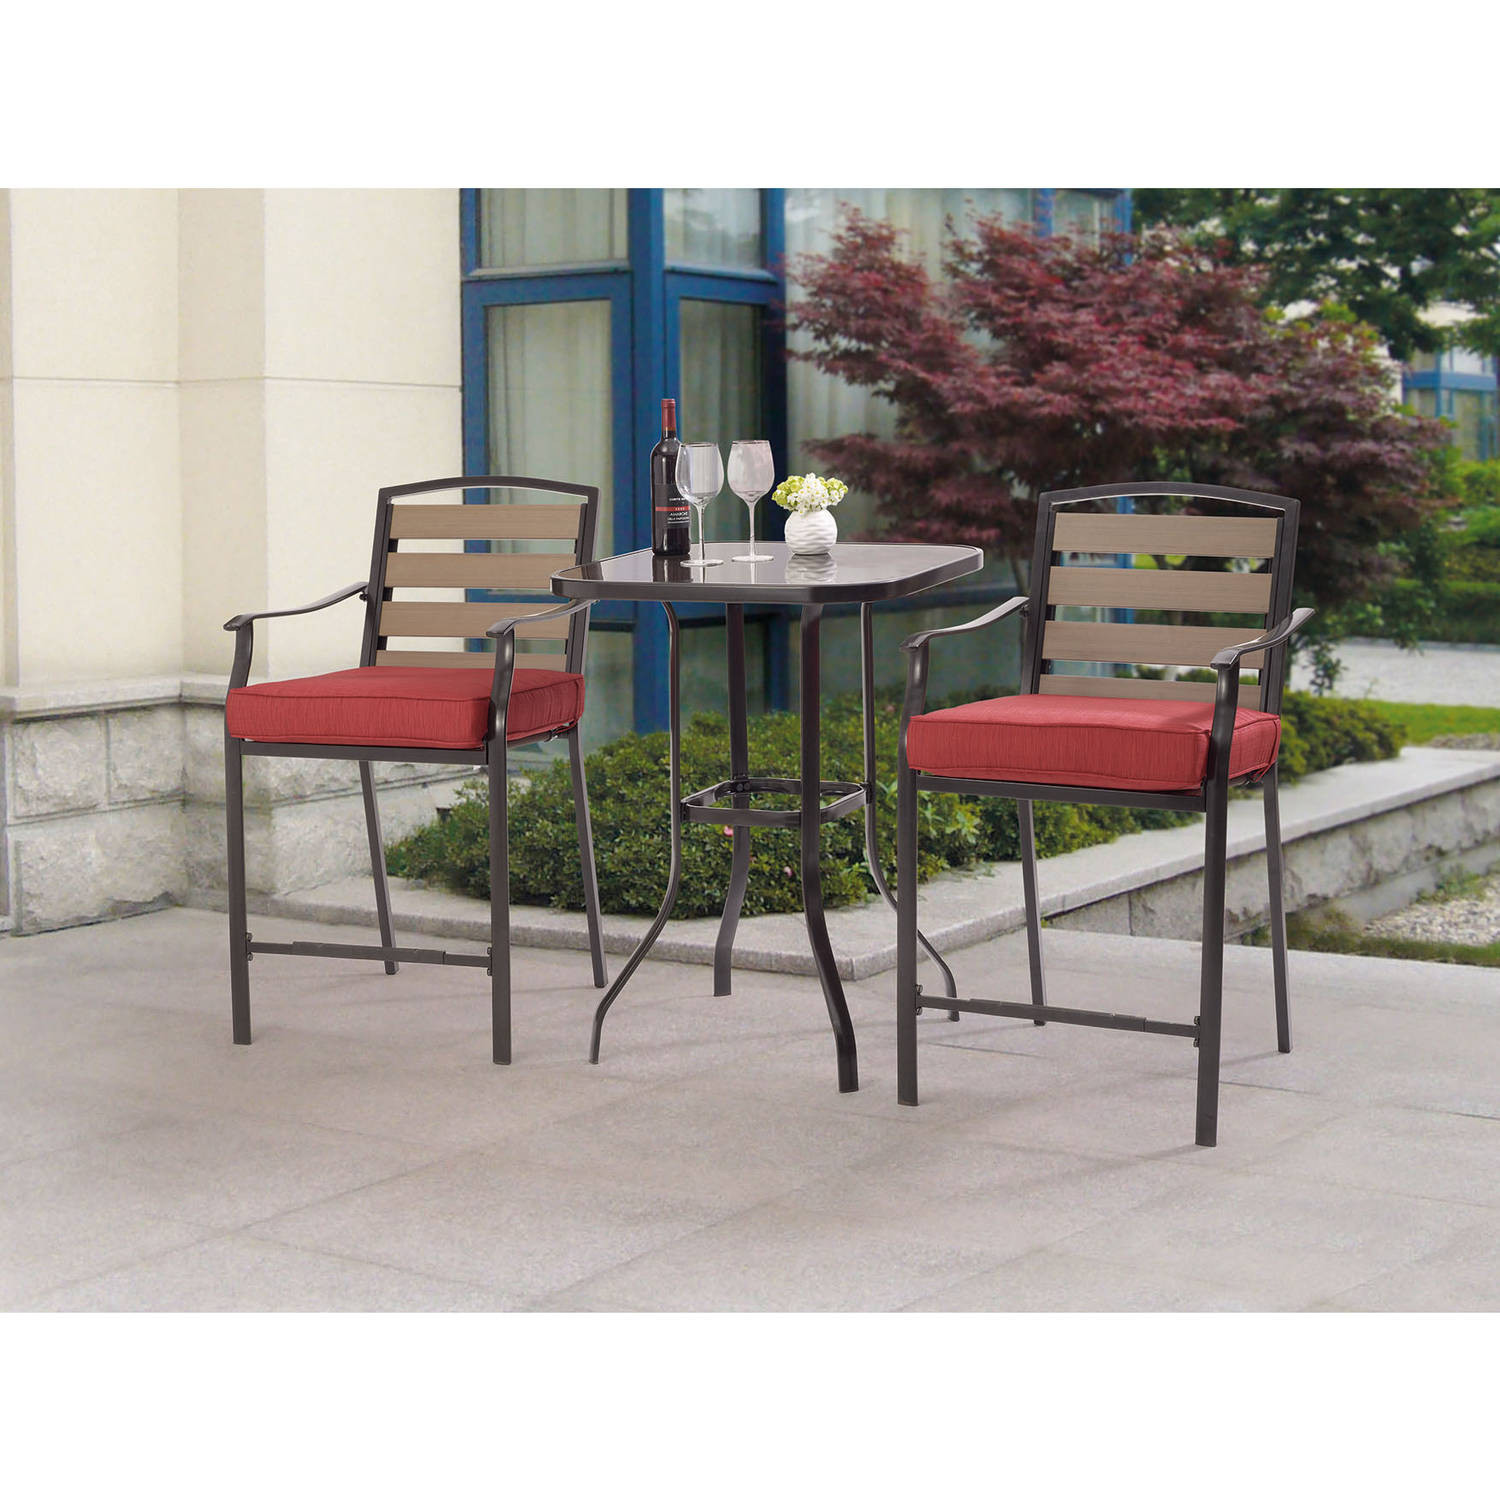 Best ideas about Patio Furniture Walmart . Save or Pin Patio Bar Sets Walmart Now.